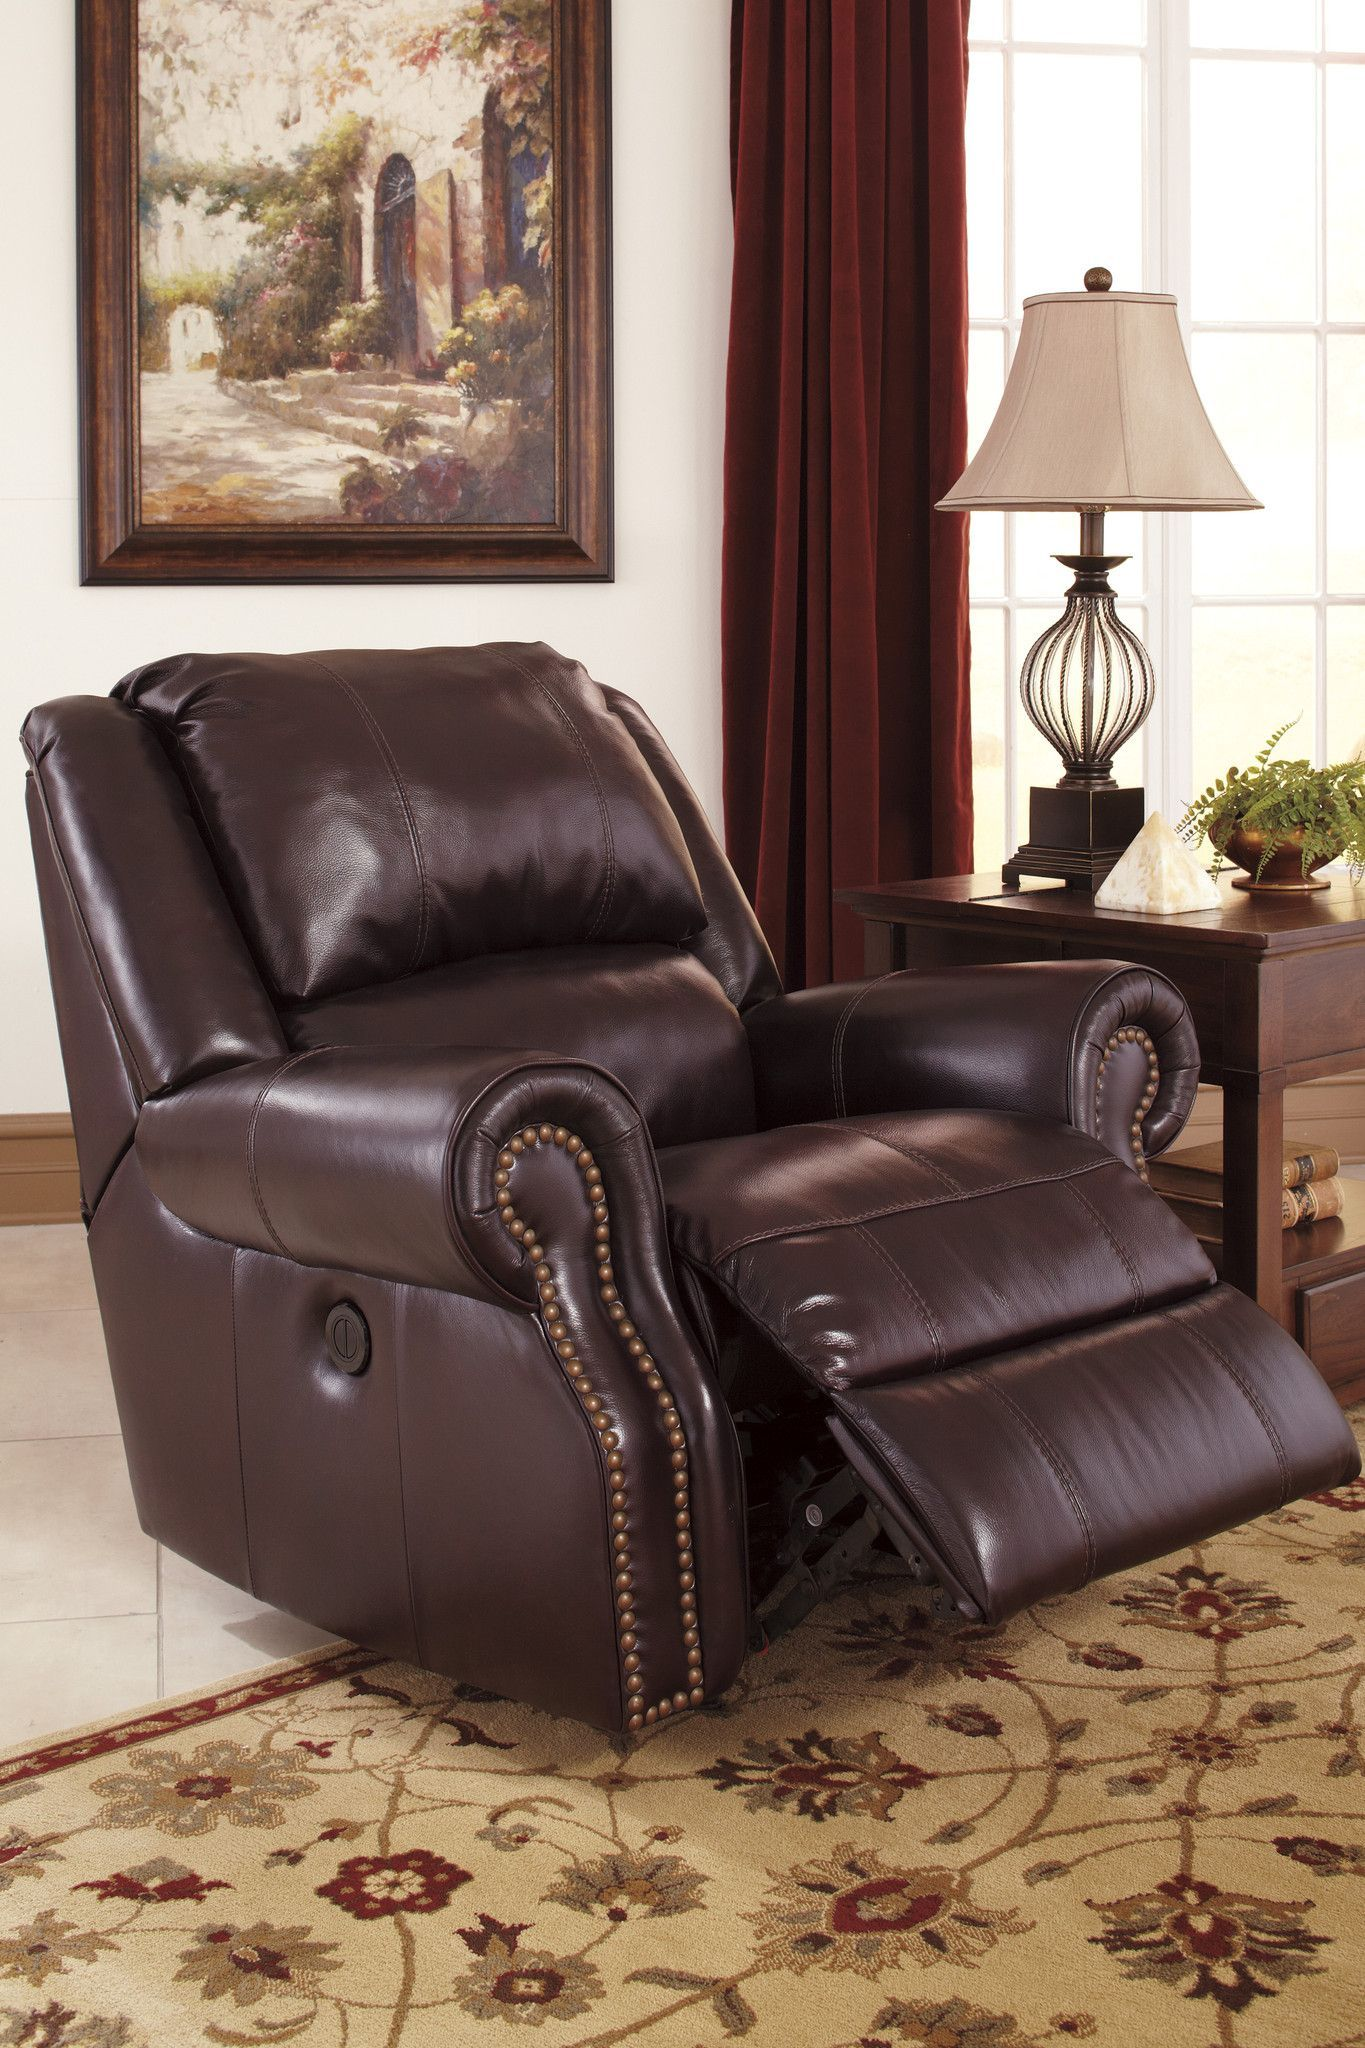 Walworth Power Recliner by Ashley Furniture at Kensington Furniture ...